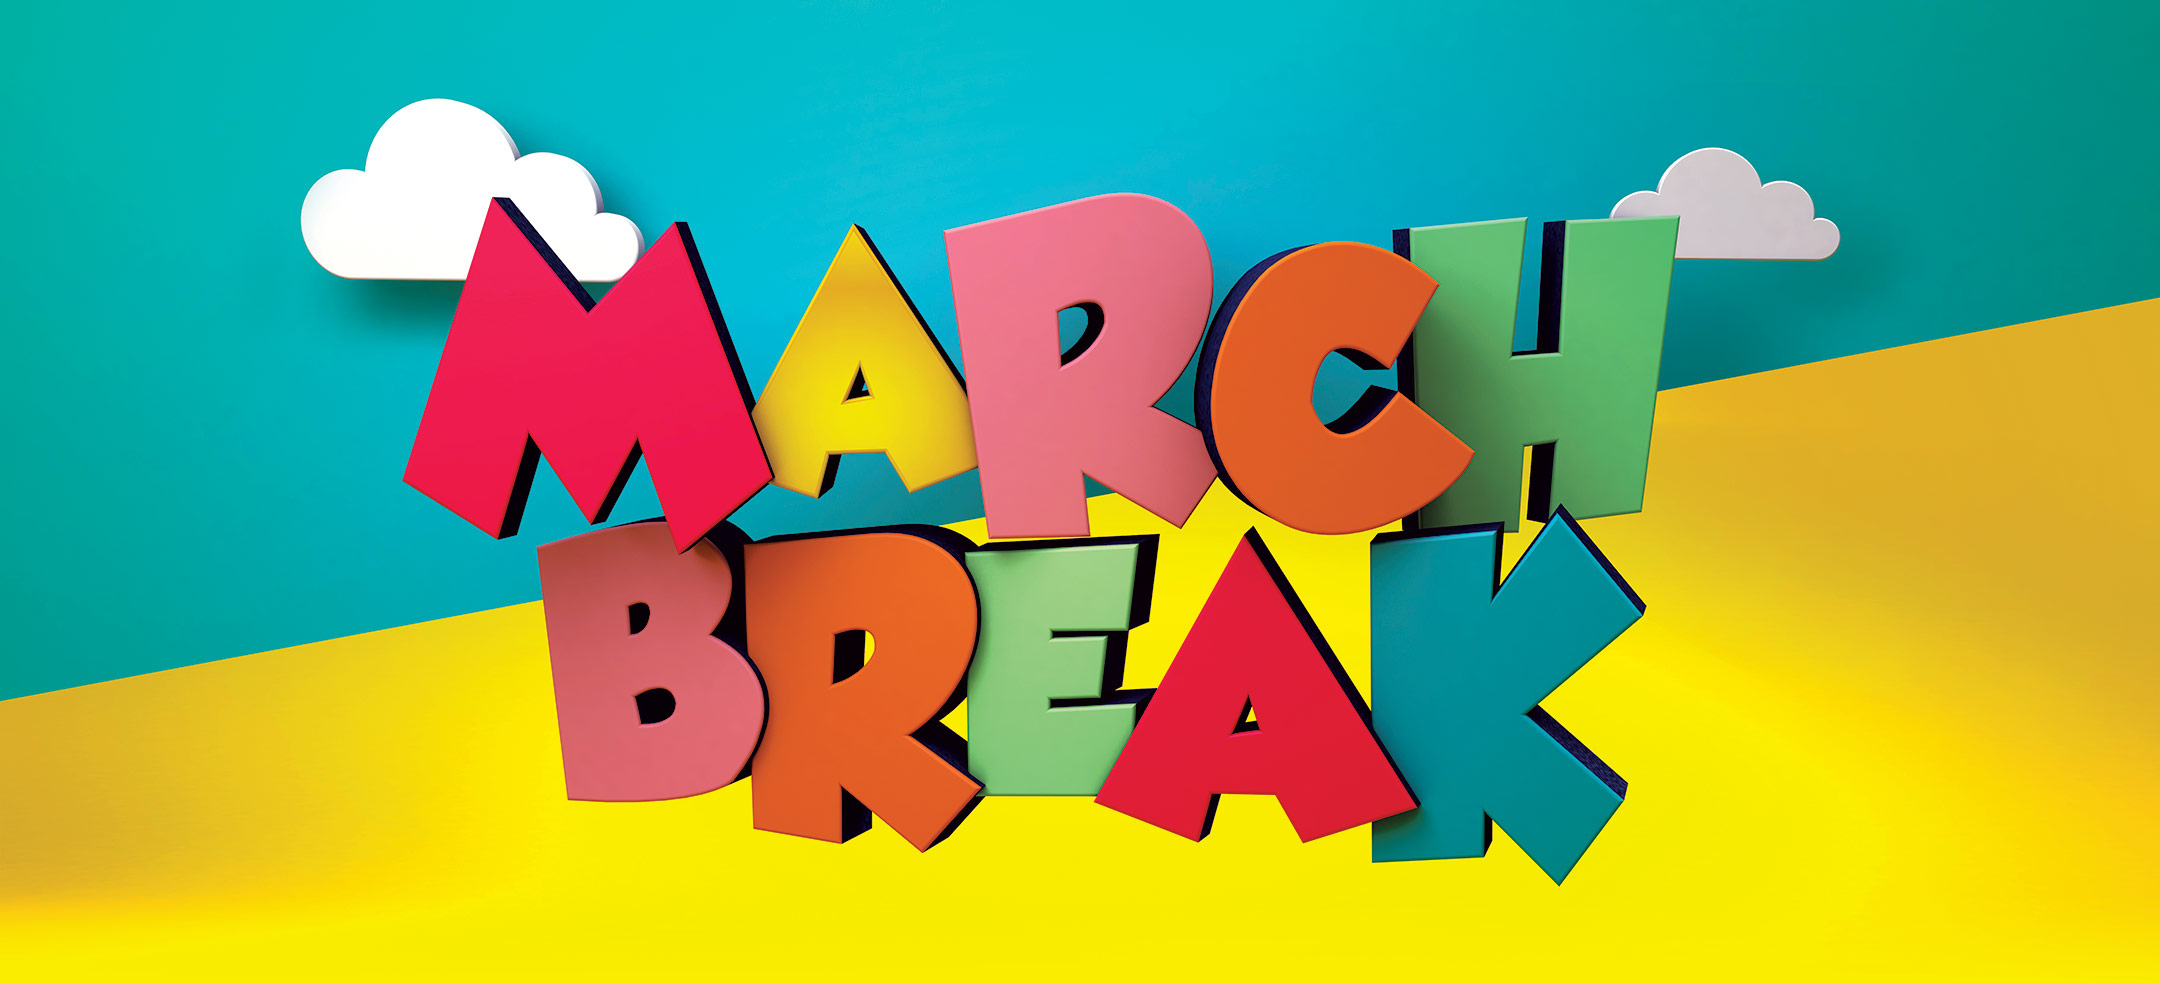 March break clipart 4 » Clipart Station.